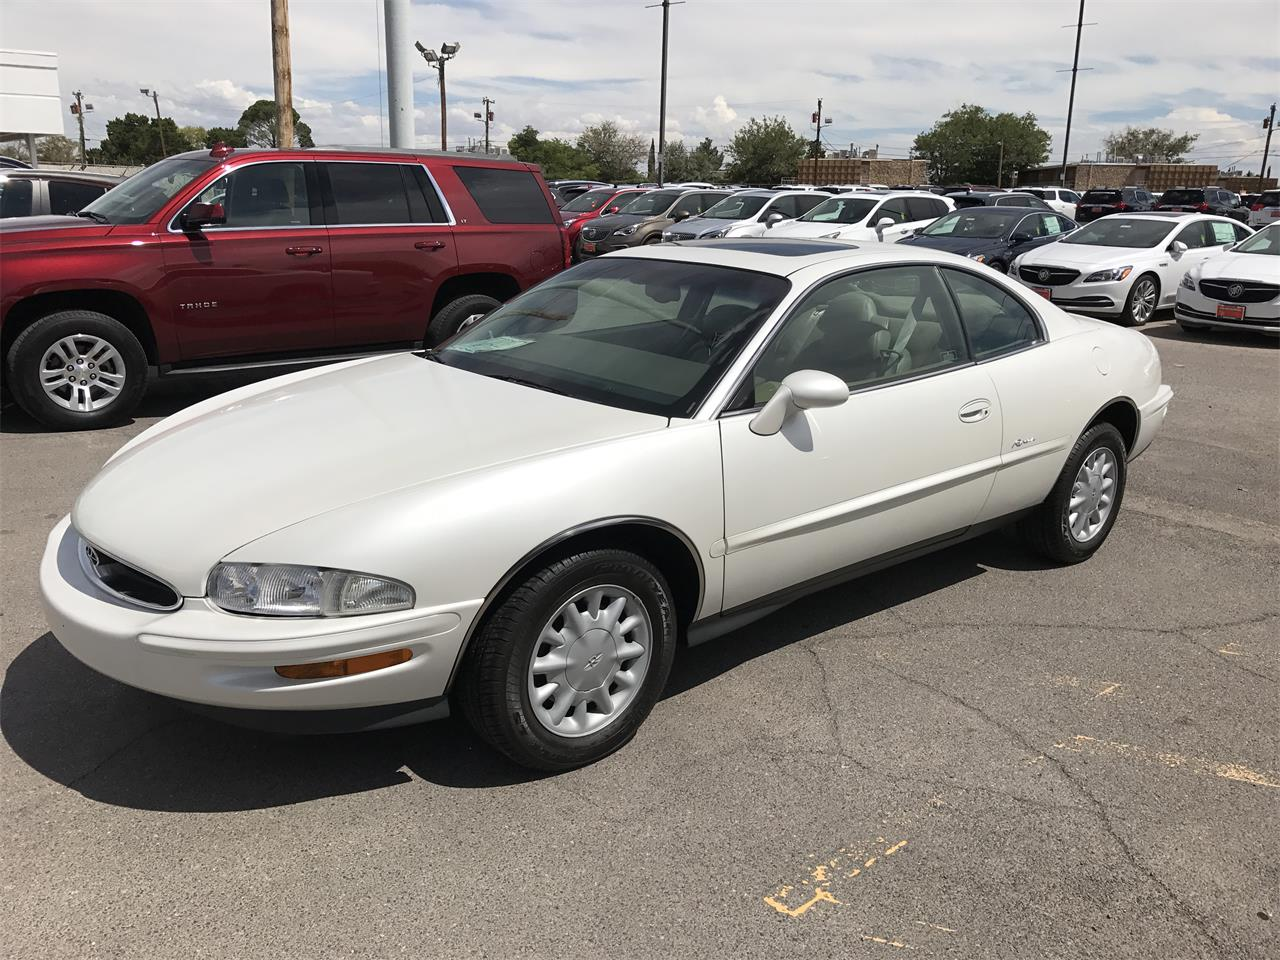 1999 buick riviera for sale classiccars com cc 1012964 1999 buick riviera for sale